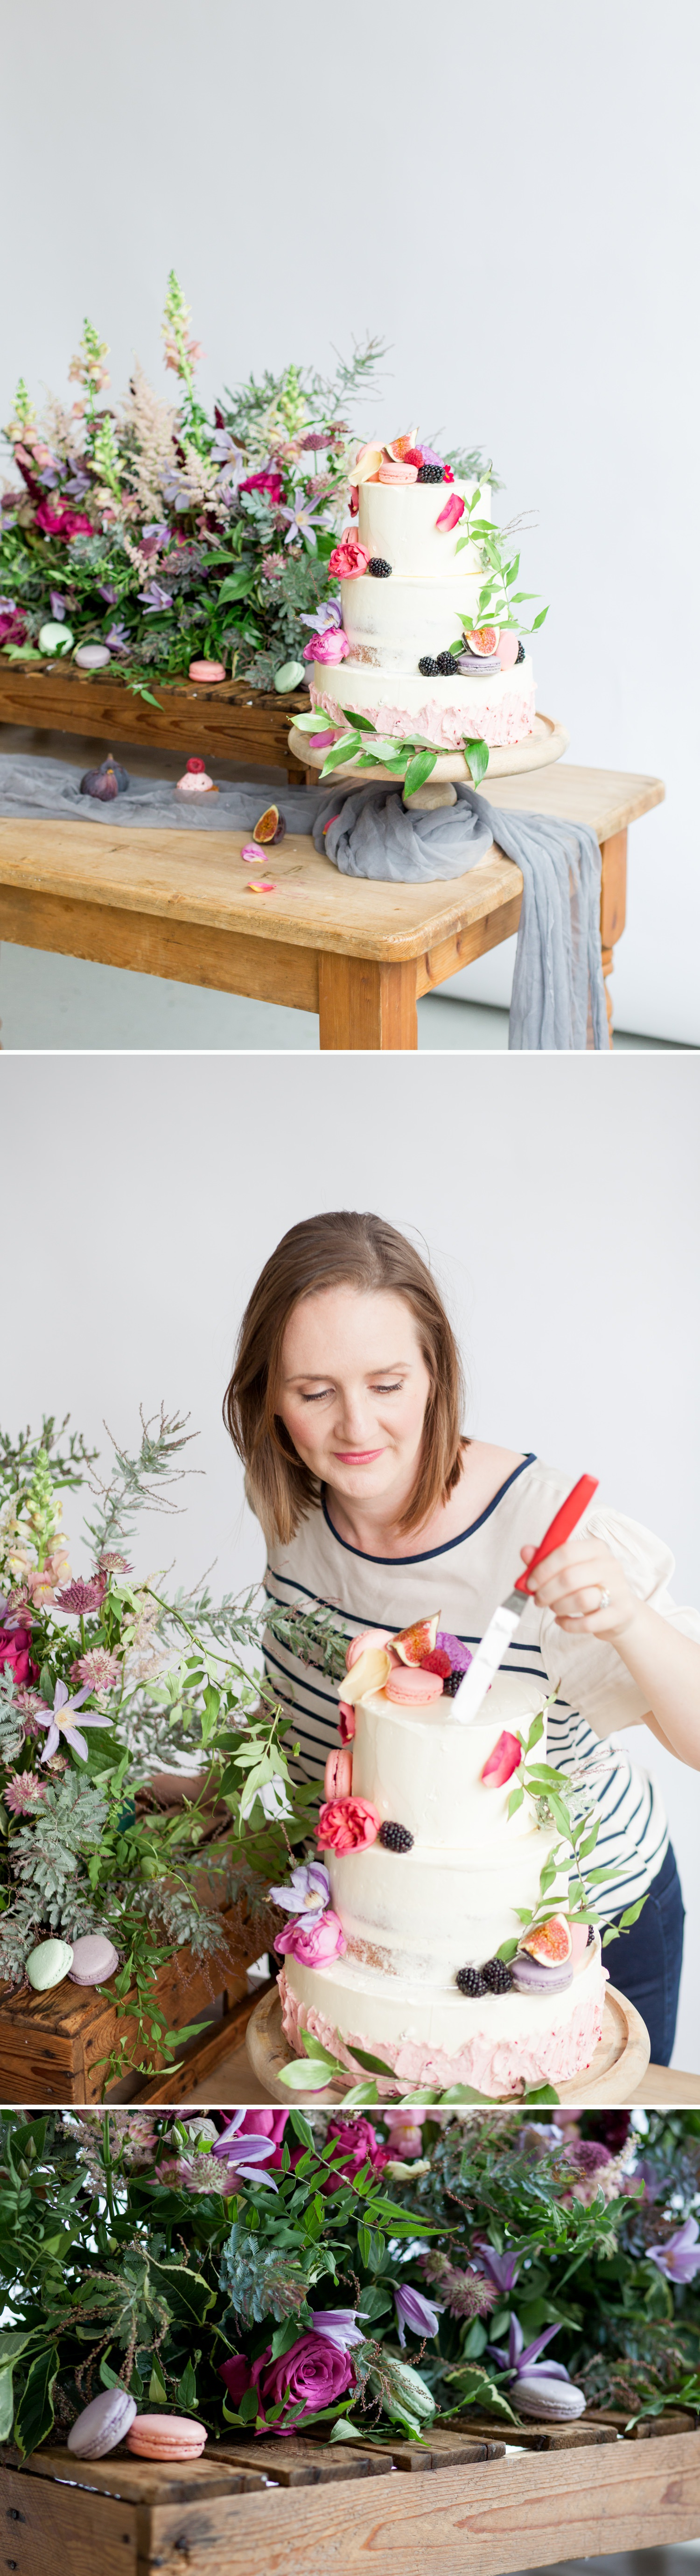 Personal branding shoot for Milk Street Kitchen - abundant flowers, figs and cakes